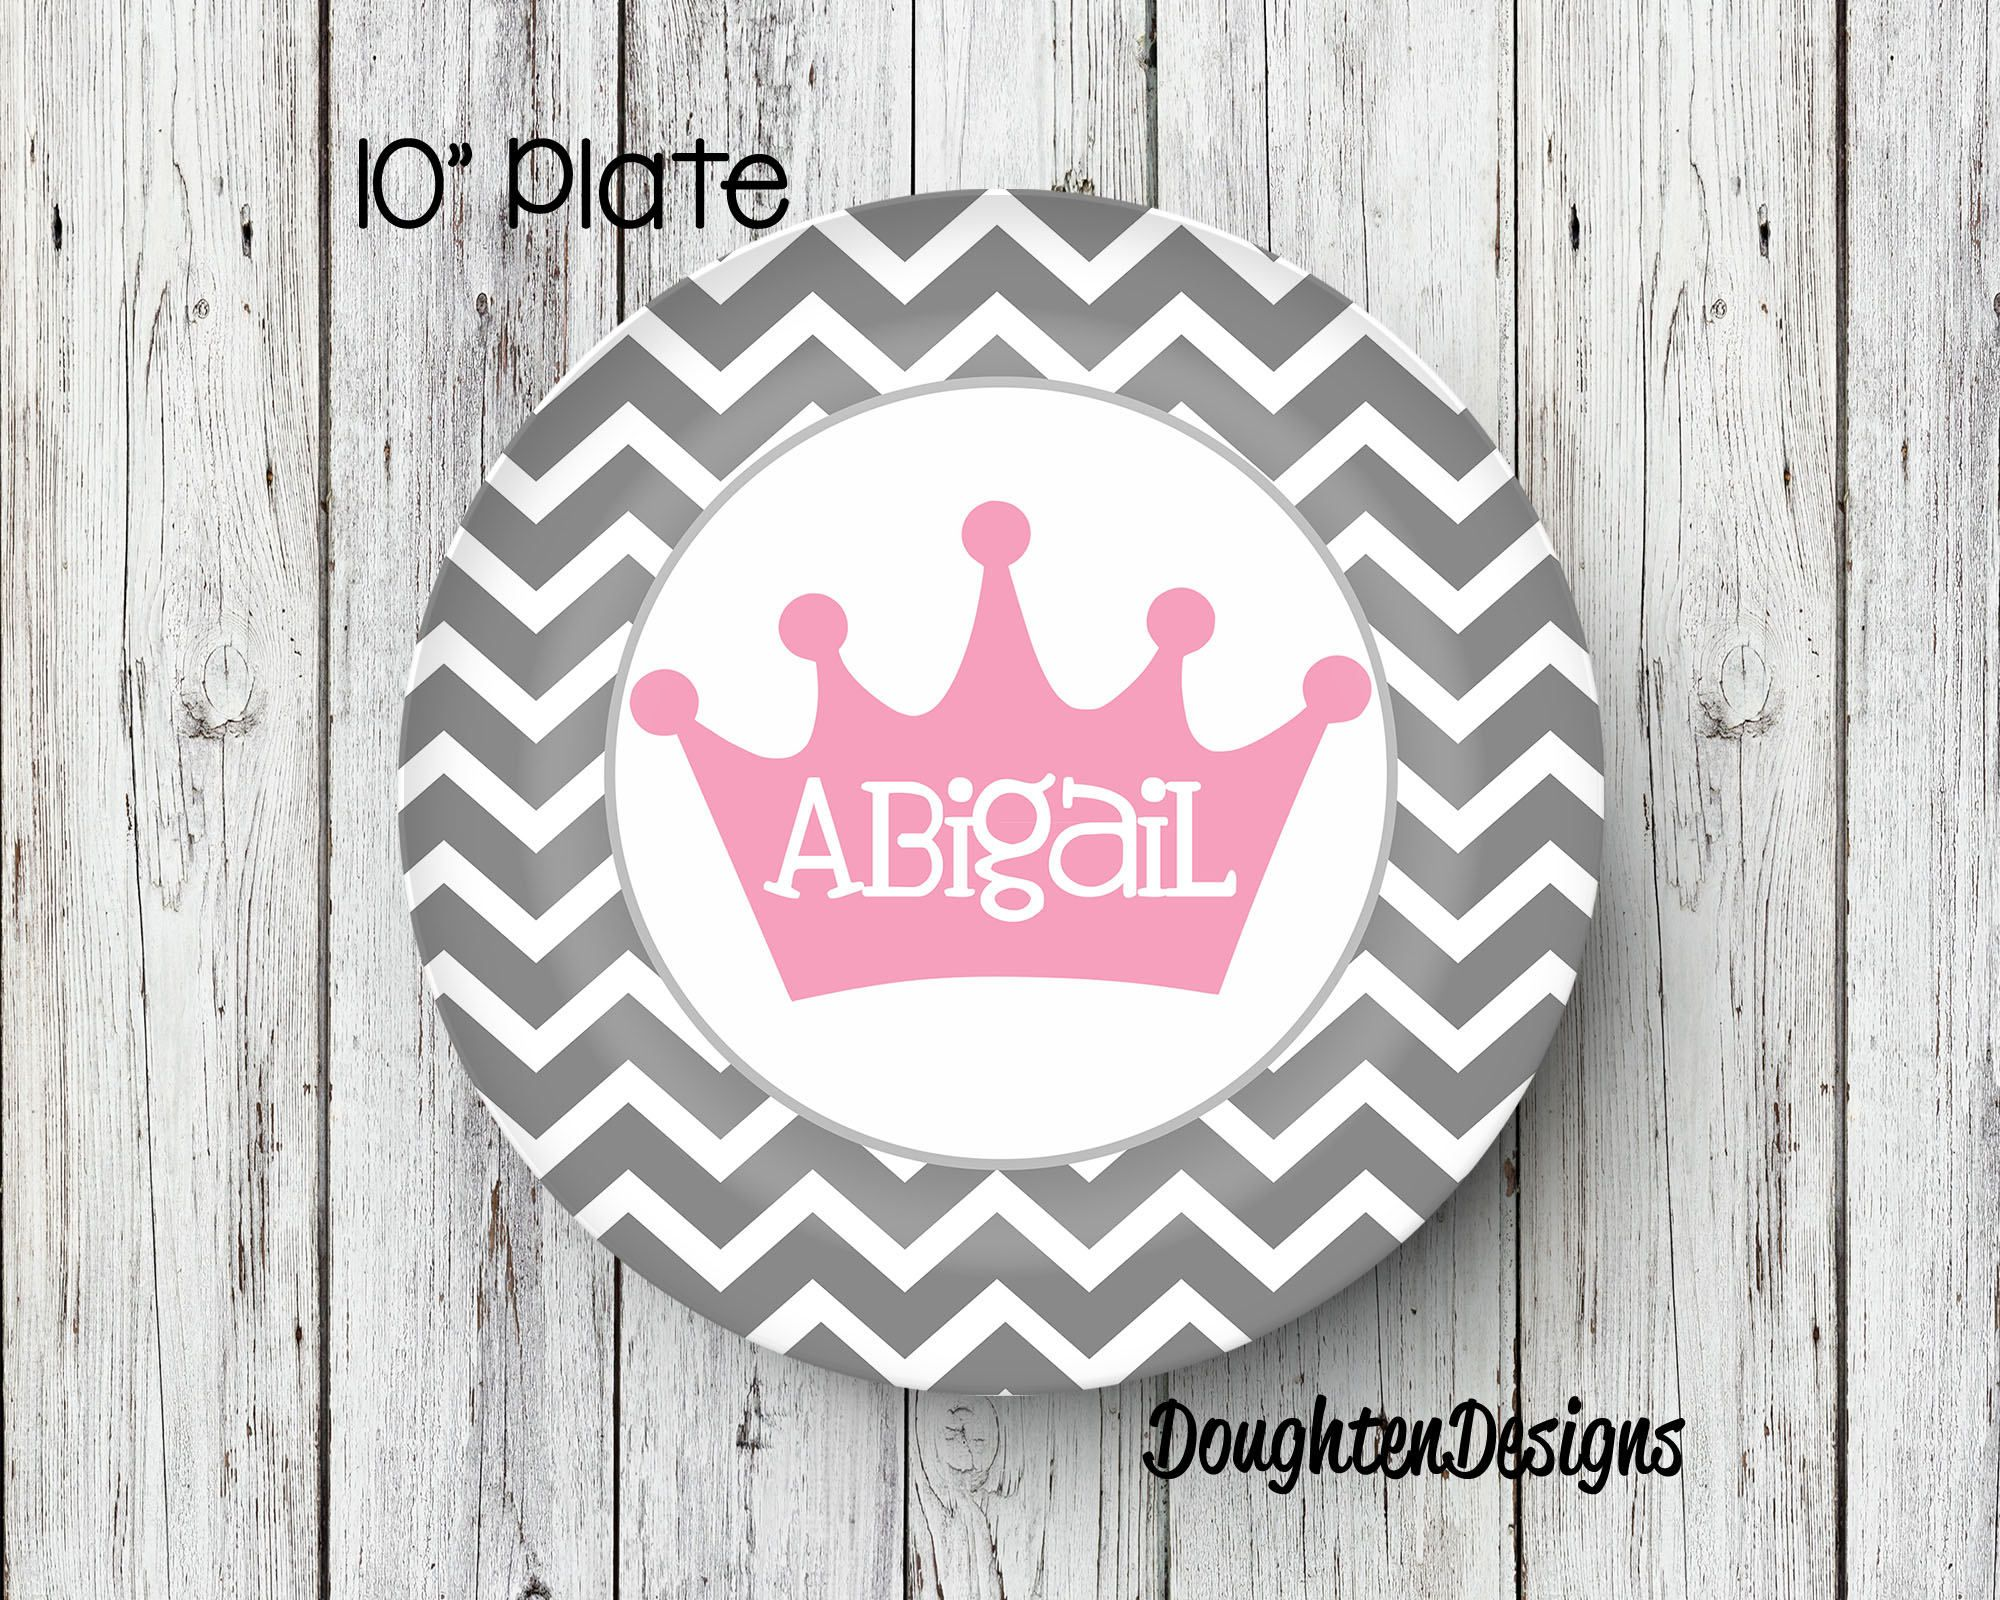 Personalized Melamine Plate Princess Plate personalized kids plate Girl plate 1st birthday  sc 1 st  Pinterest & Personalized Melamine Plate Princess Plate personalized kids plate ...